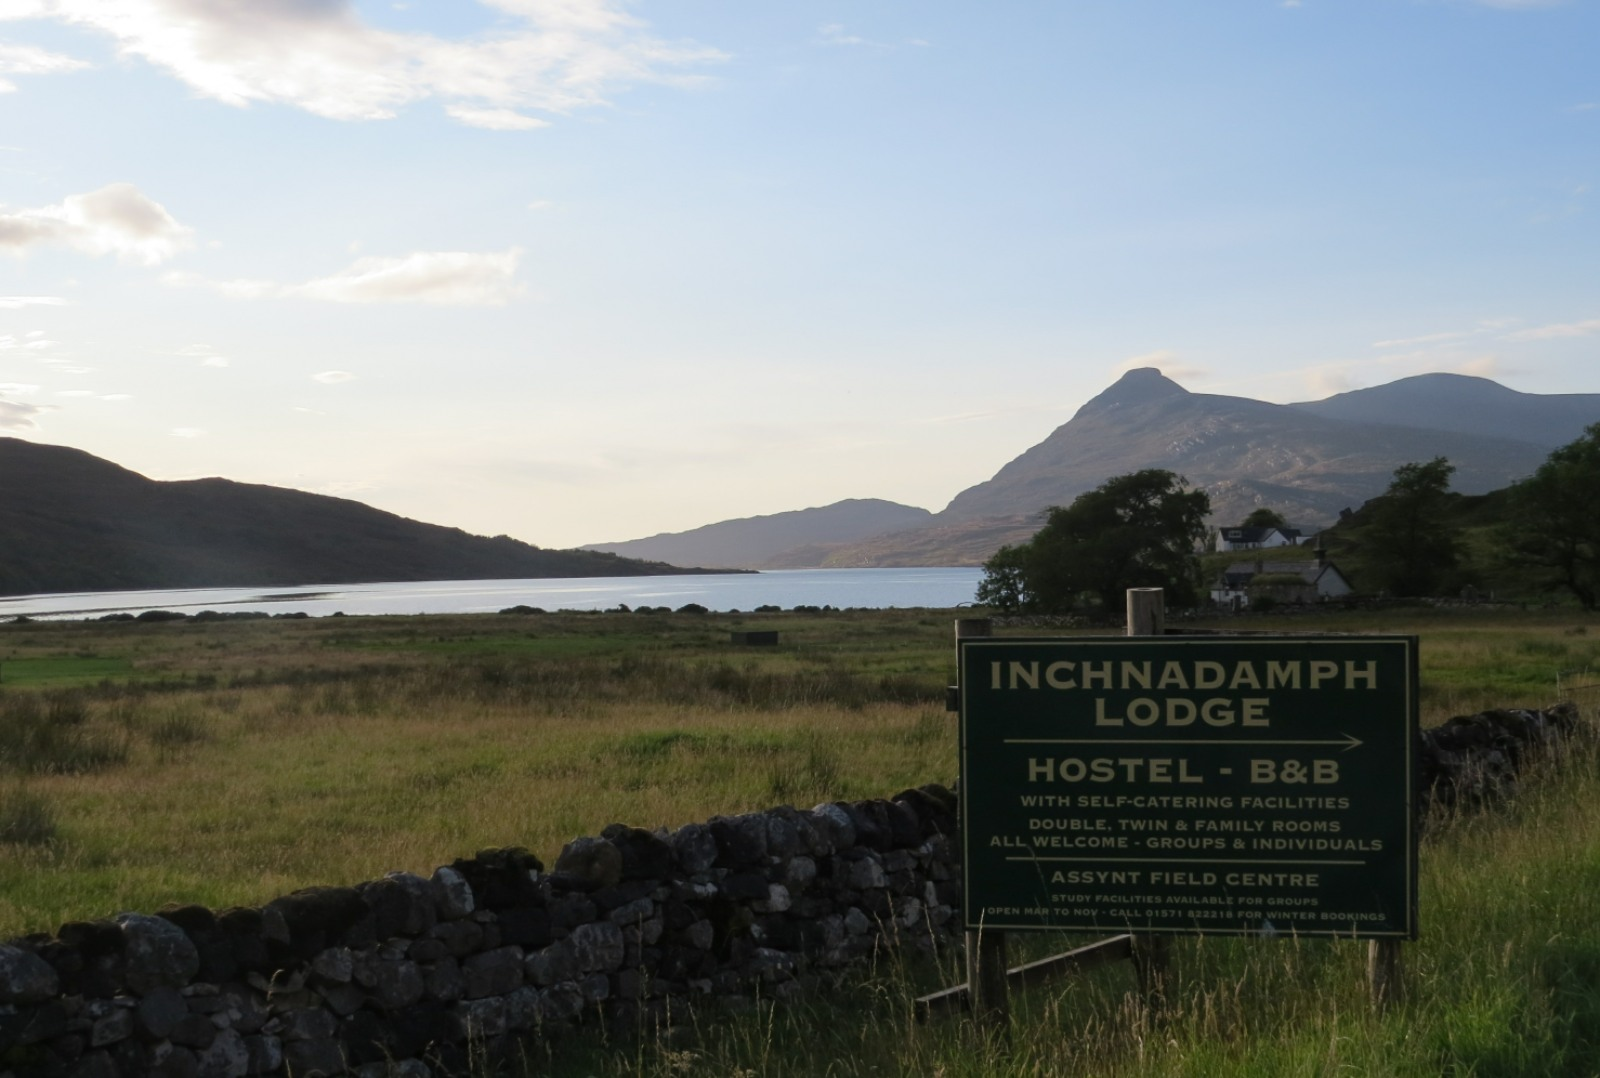 View from Inchnadamph Lodge